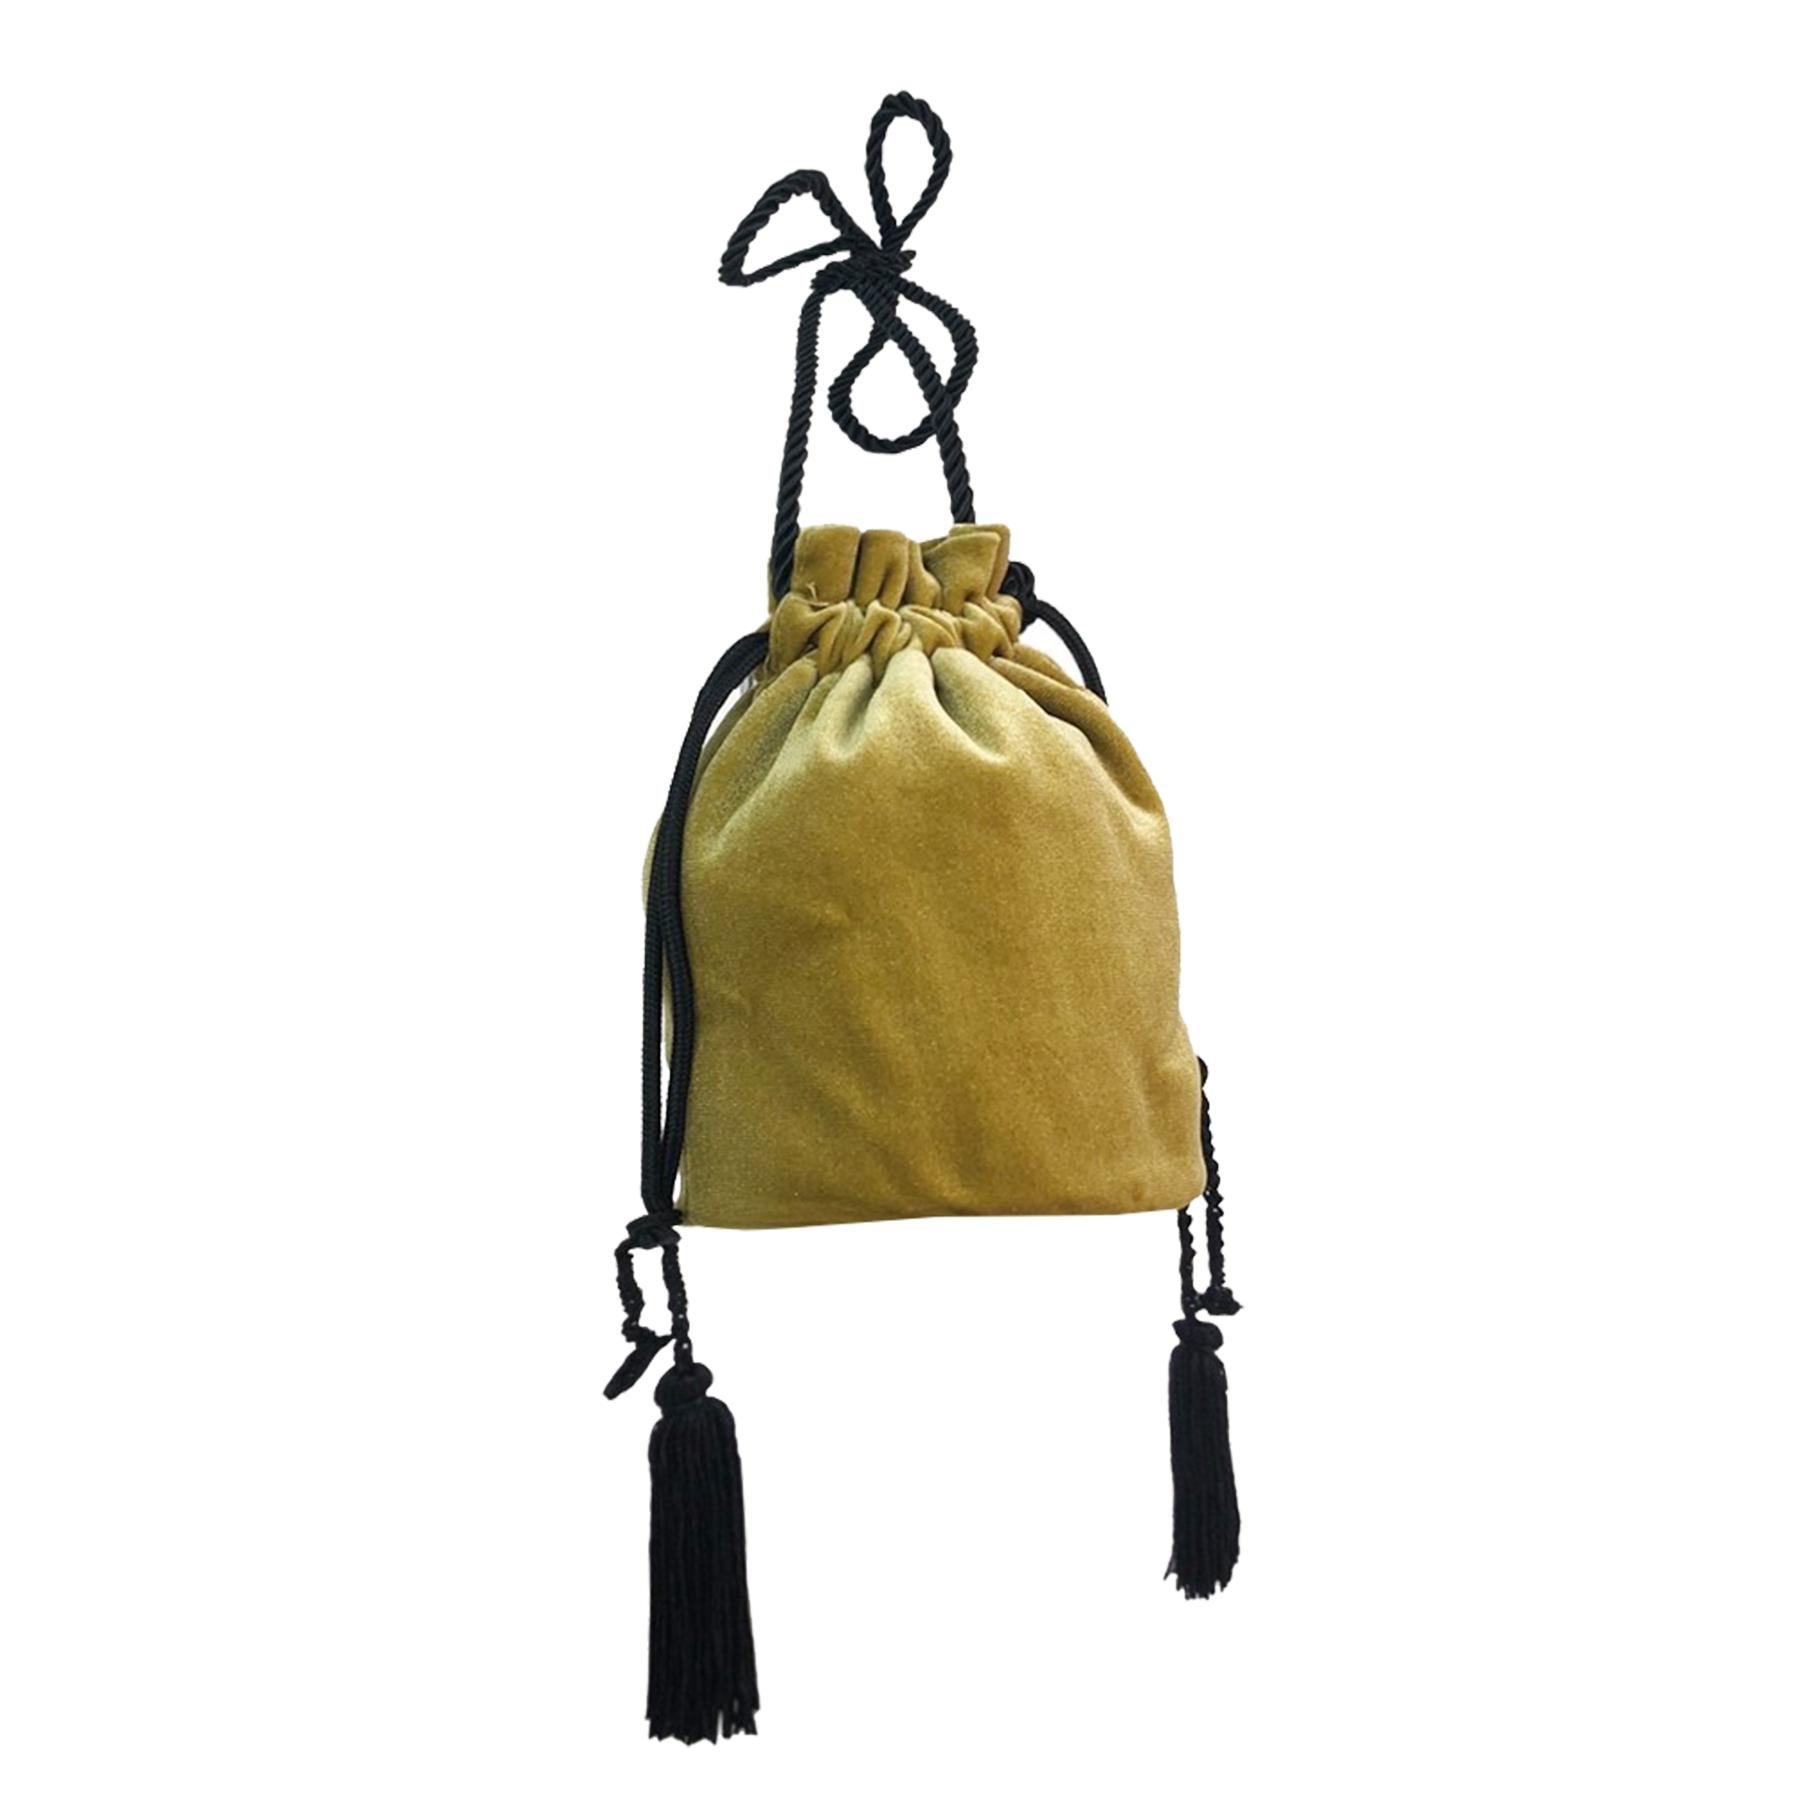 New-Women-s-Drawstring-Velvet-Velour-Tassels-Rope-Strap-Retro-Pouch-Bag thumbnail 12